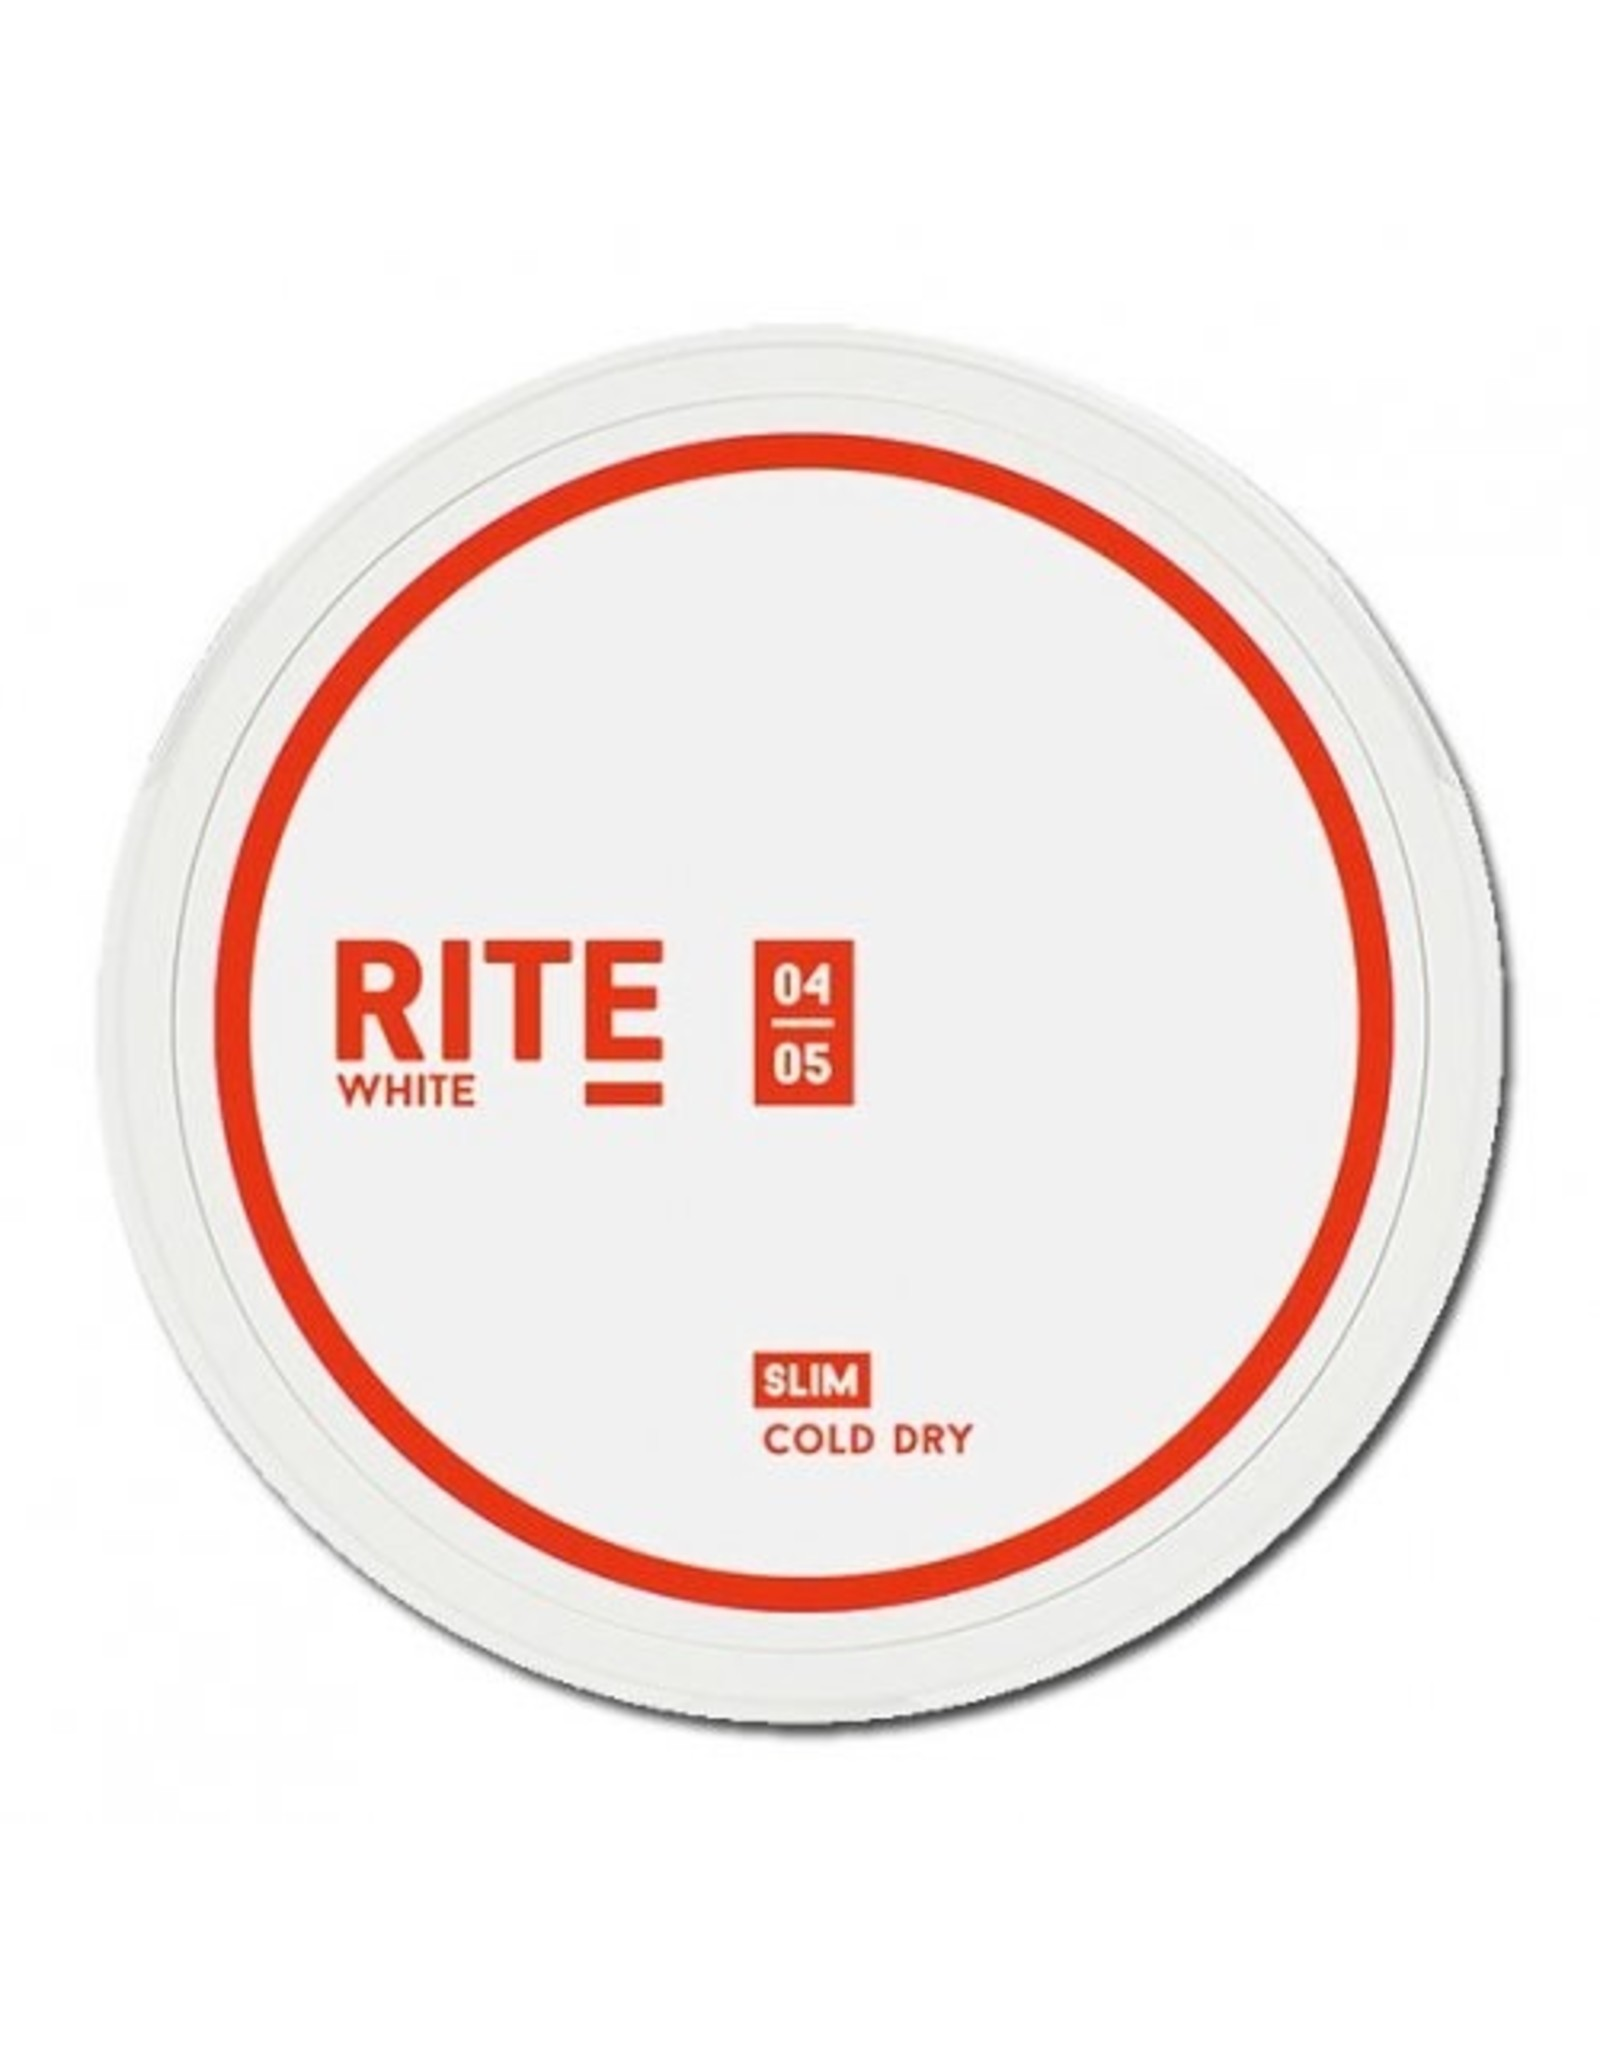 RITE Cold Dry White Slim Chewing Bags